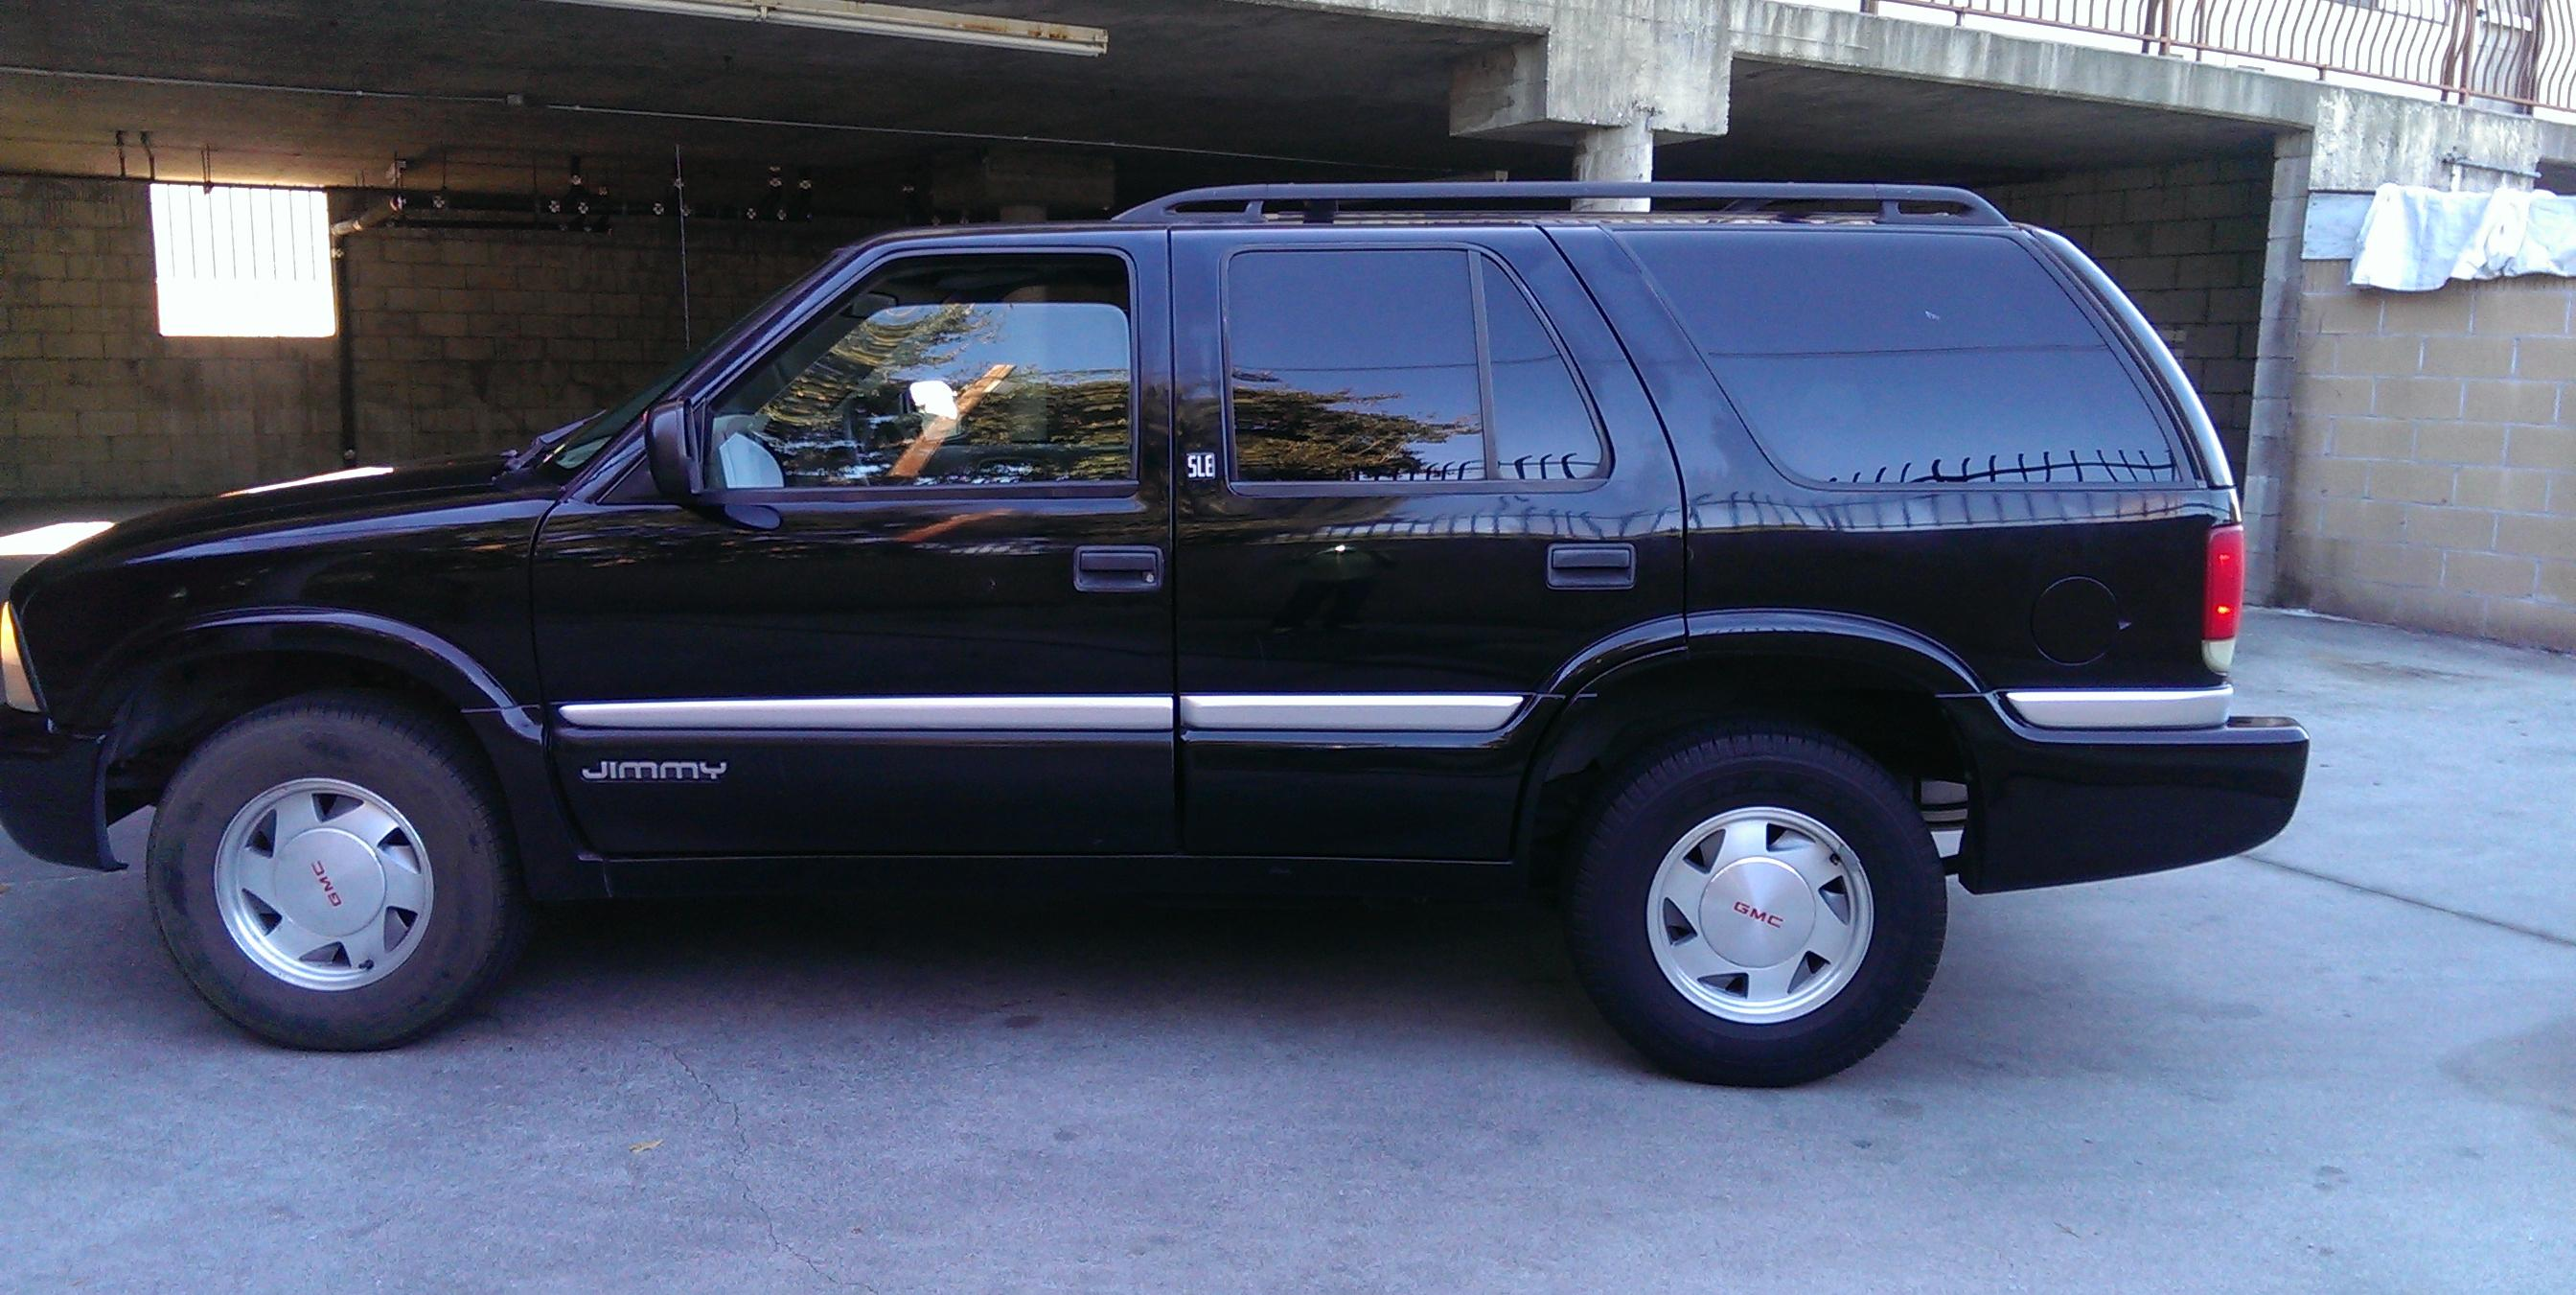 yourhighness's 1999 GMC Jimmy